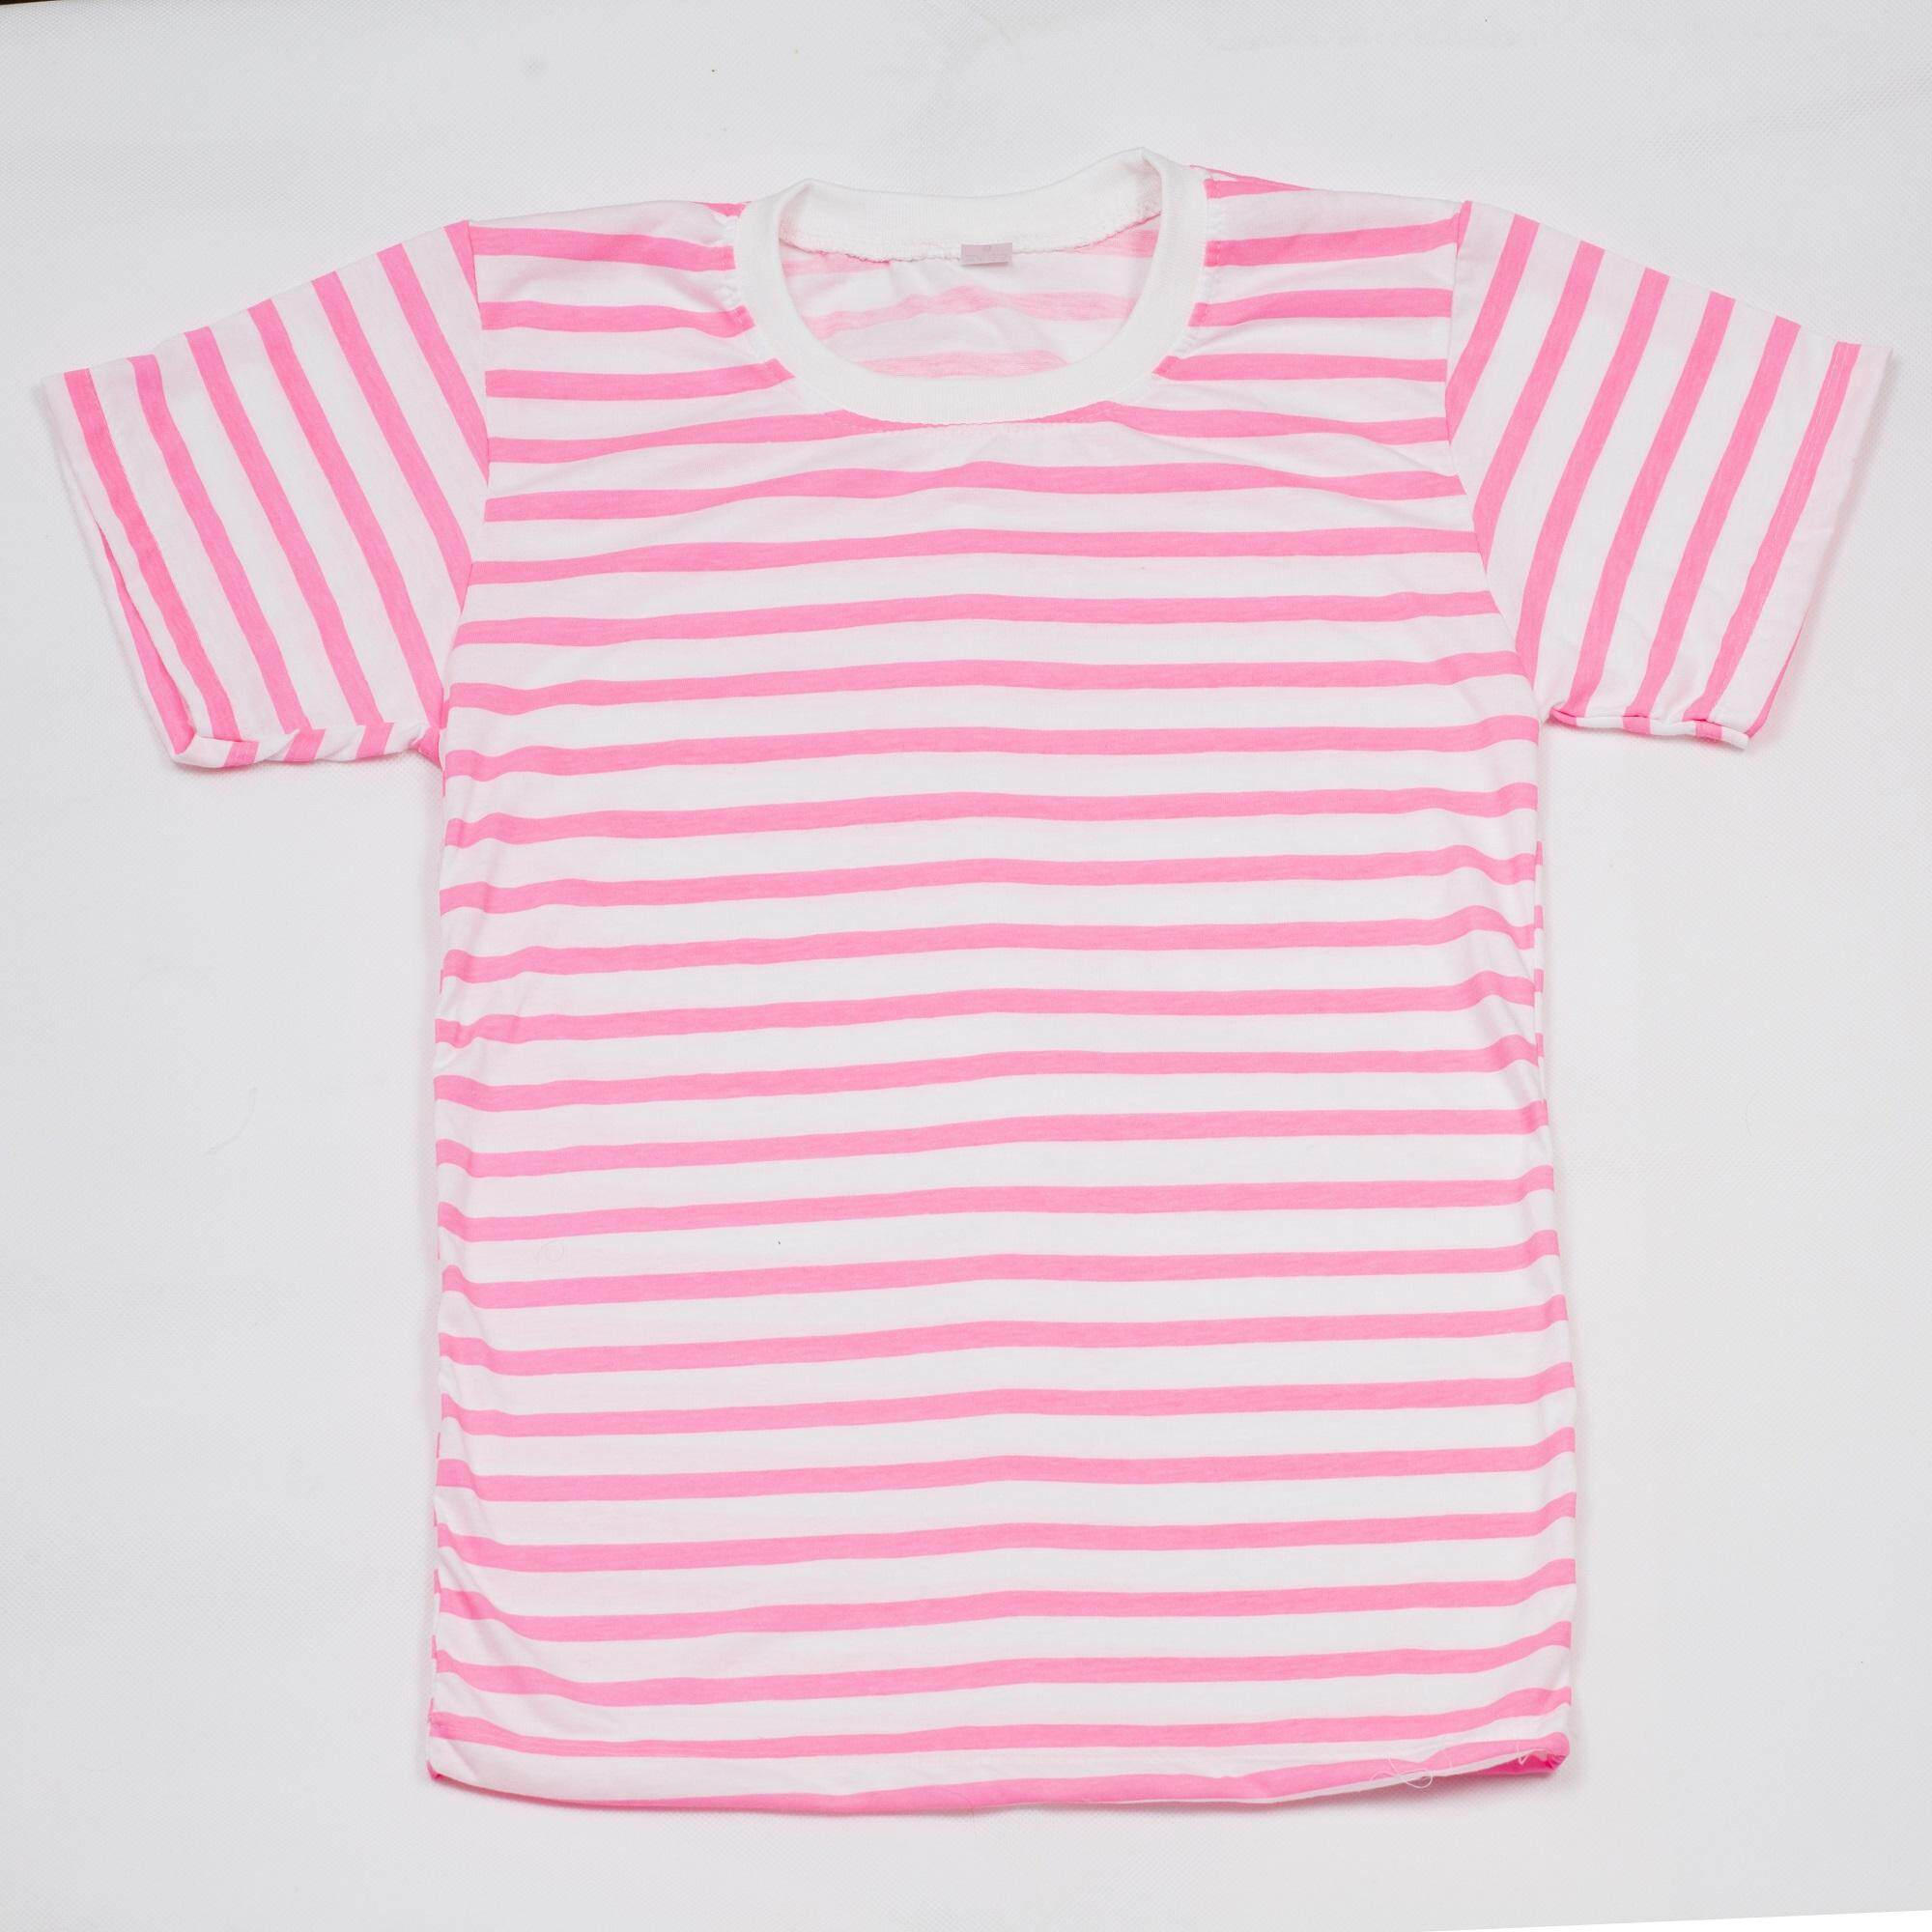 Winter Cotton T Shirt Stripes Tshirt Style Cool Printed Unisex Tee 100% Made in thailand